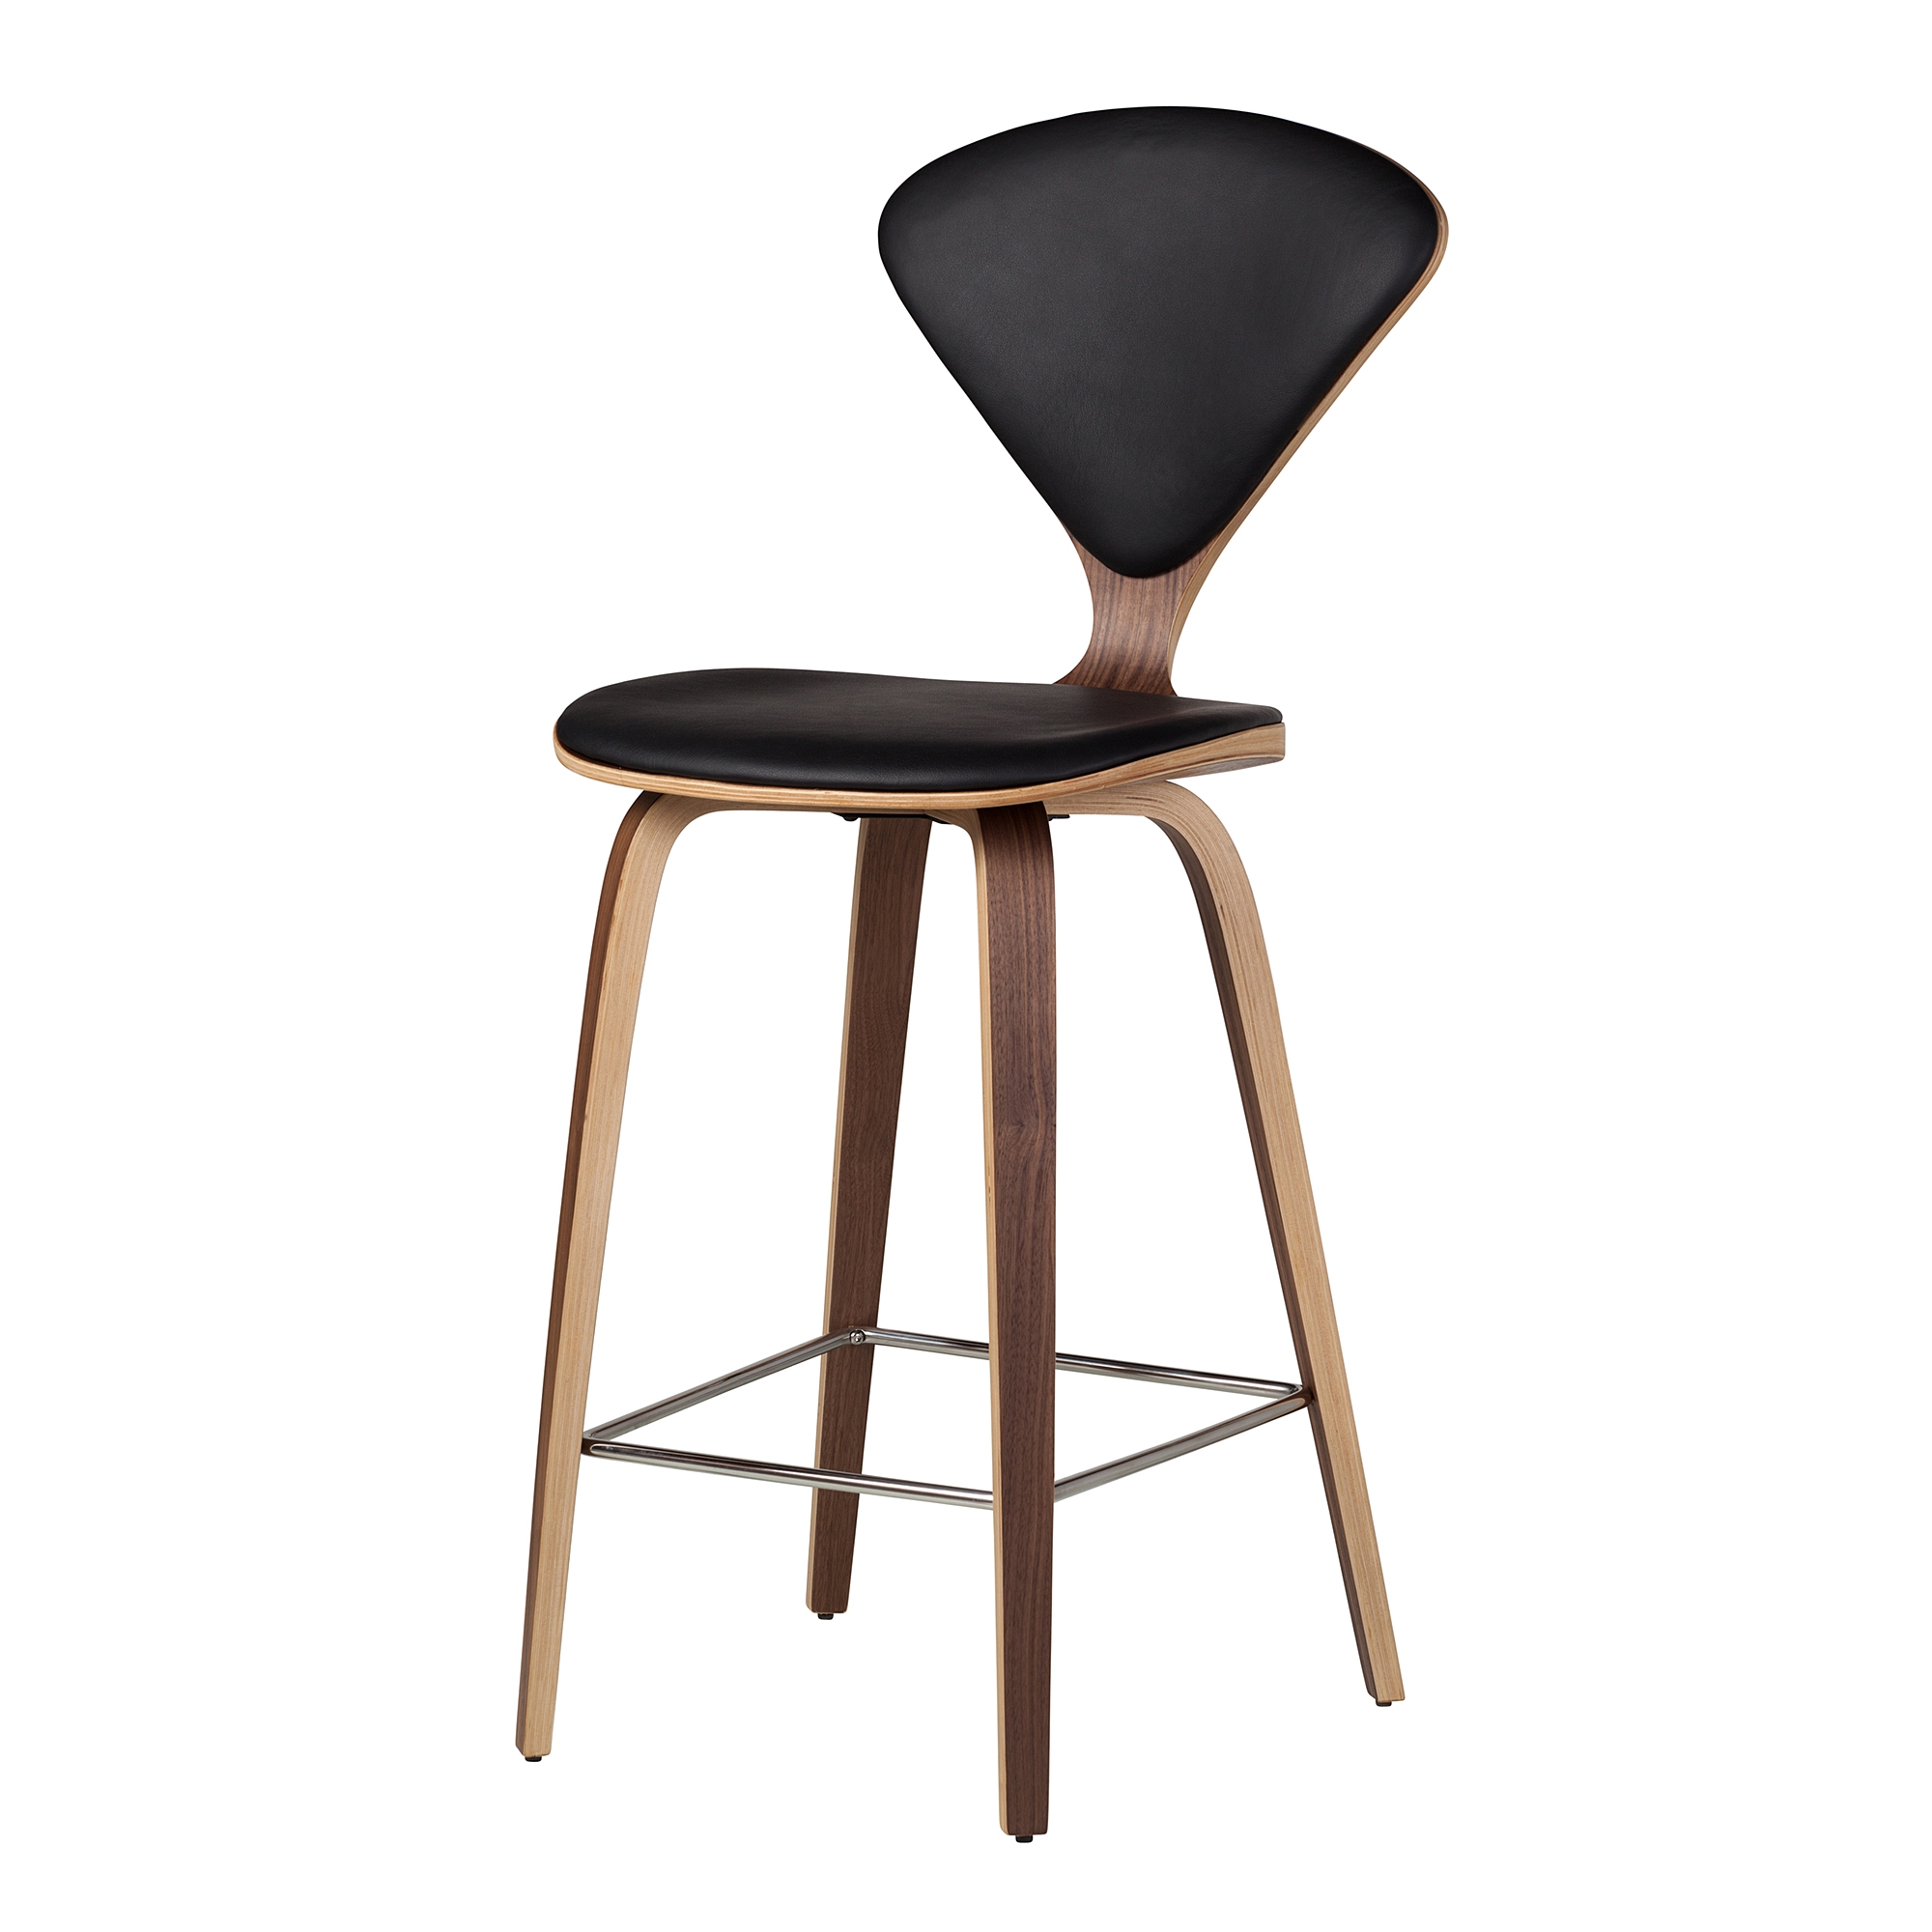 furniture with inspiring home backsooden room stoolsith bar inch swivel back stool dining black backless stools counter for